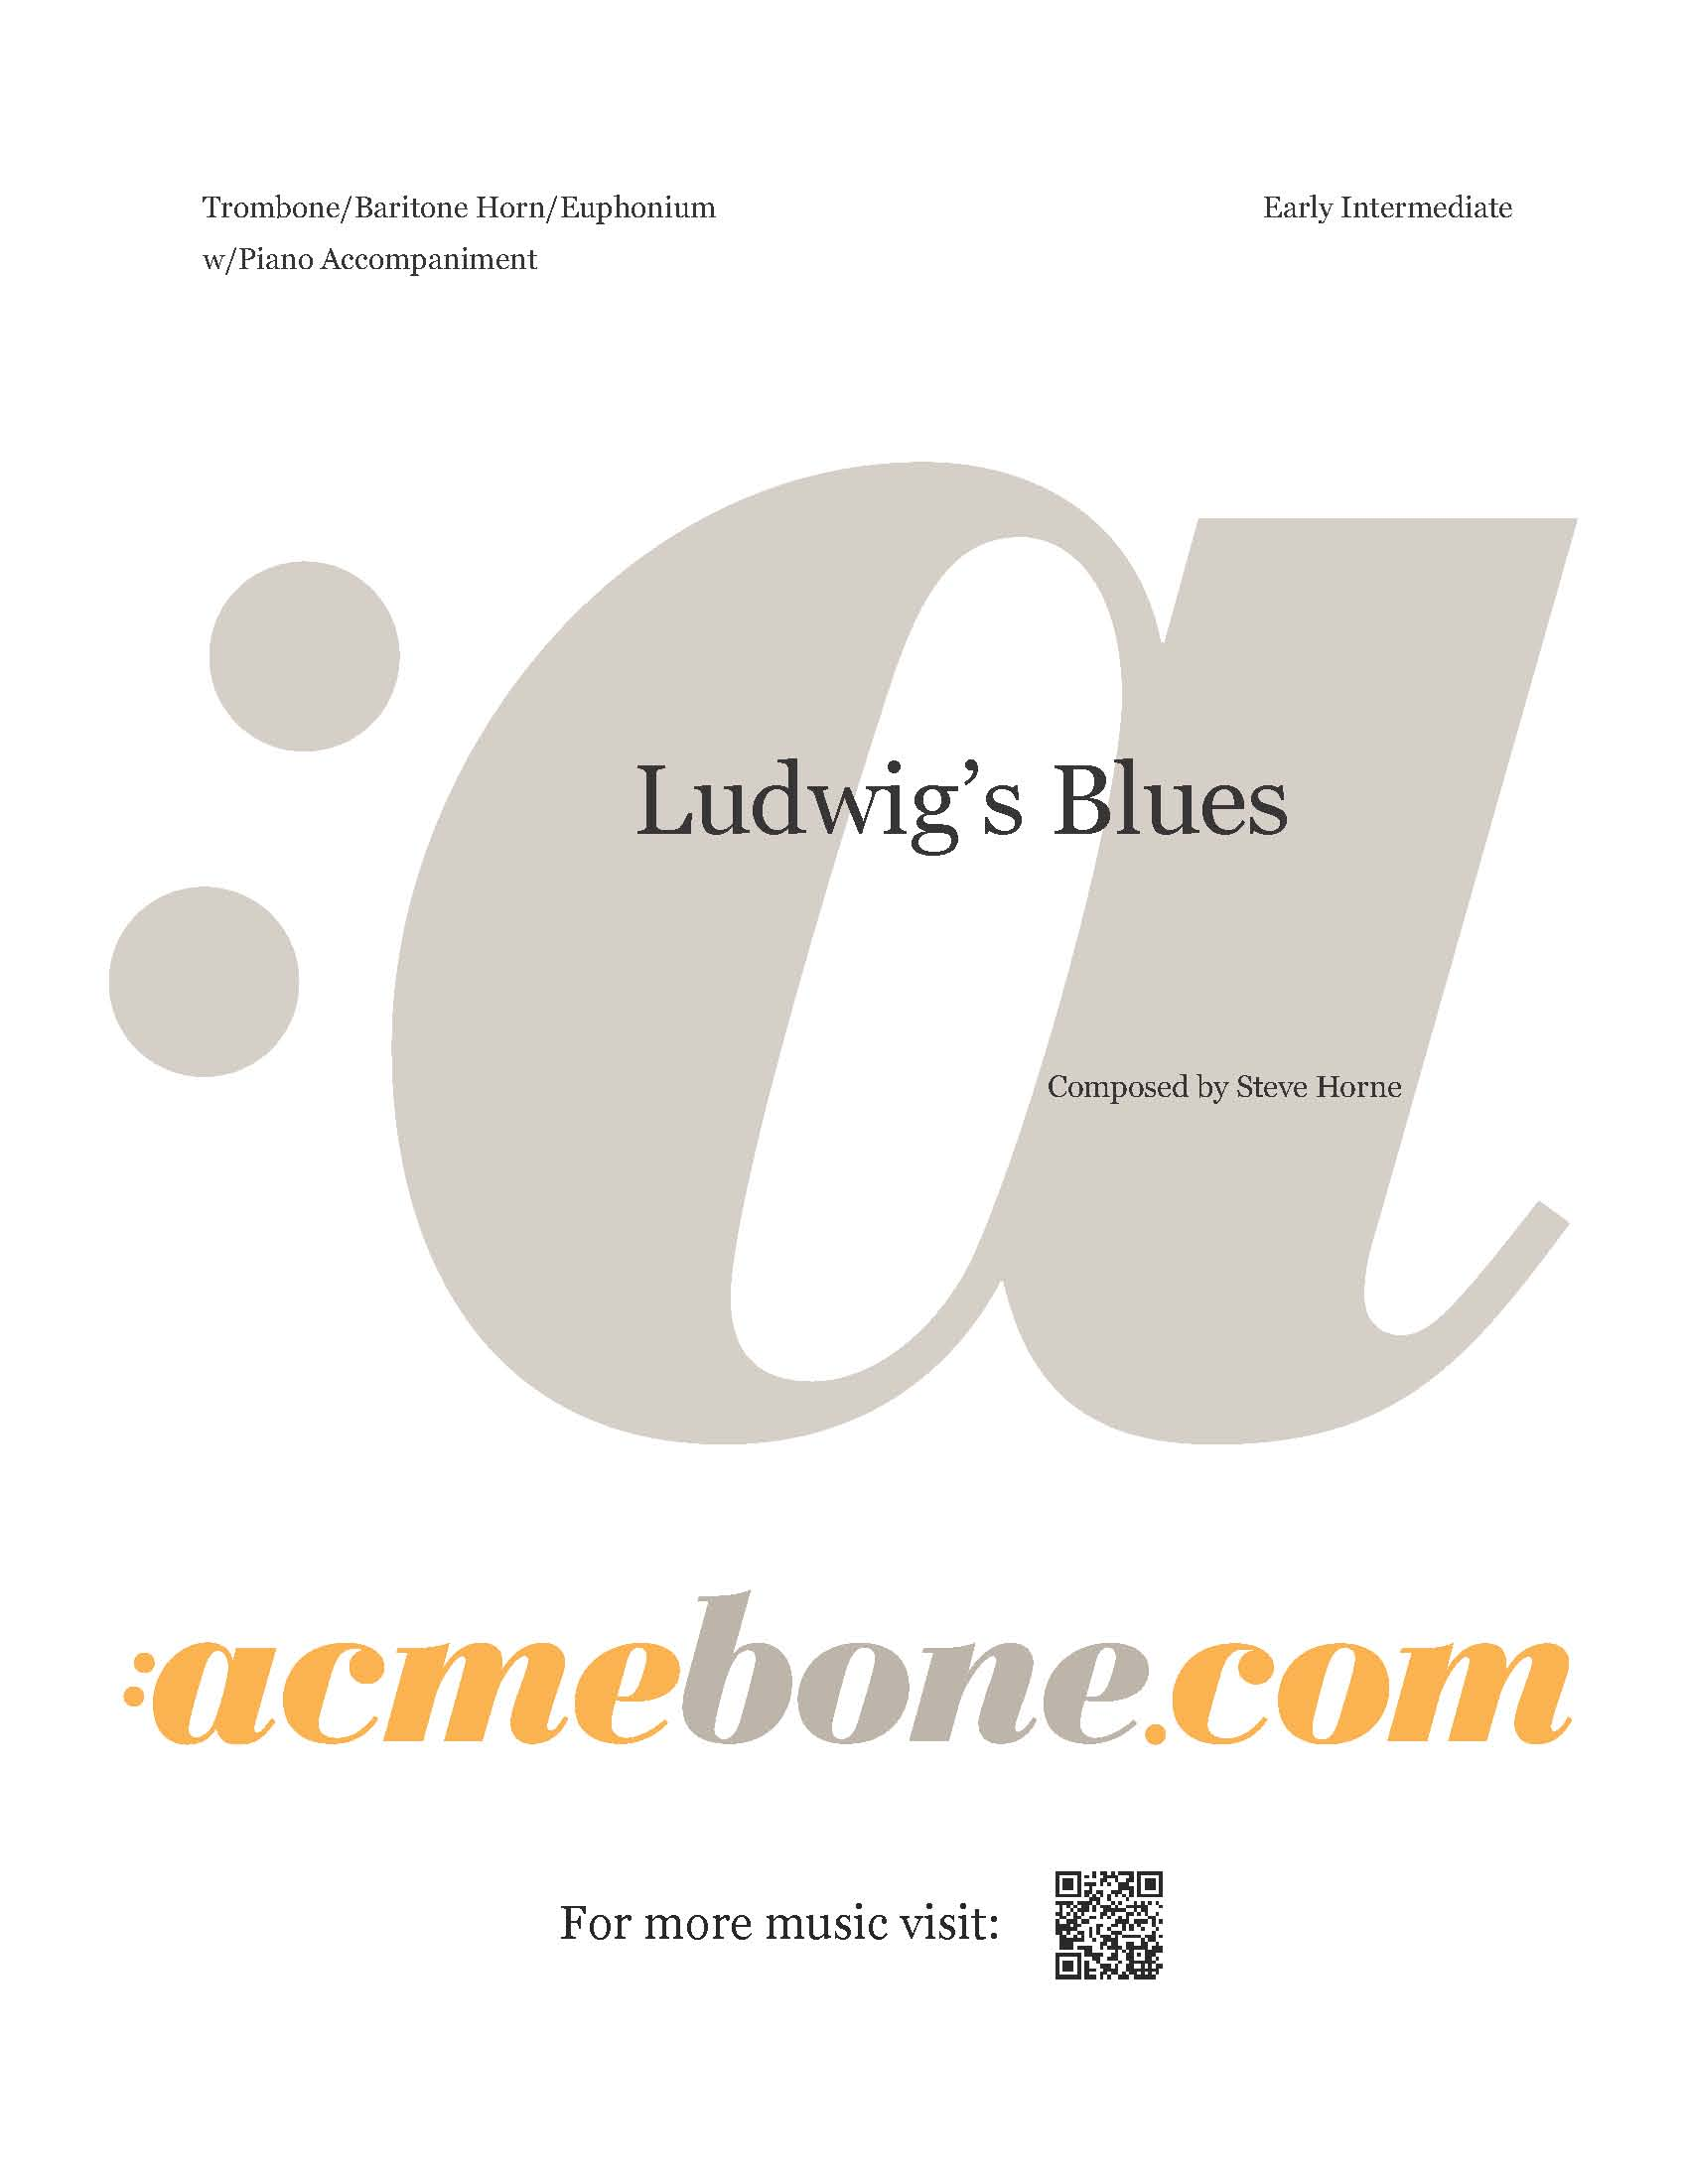 Ludwig's Blues_download_from_acmebone.com_Page_1.jpg